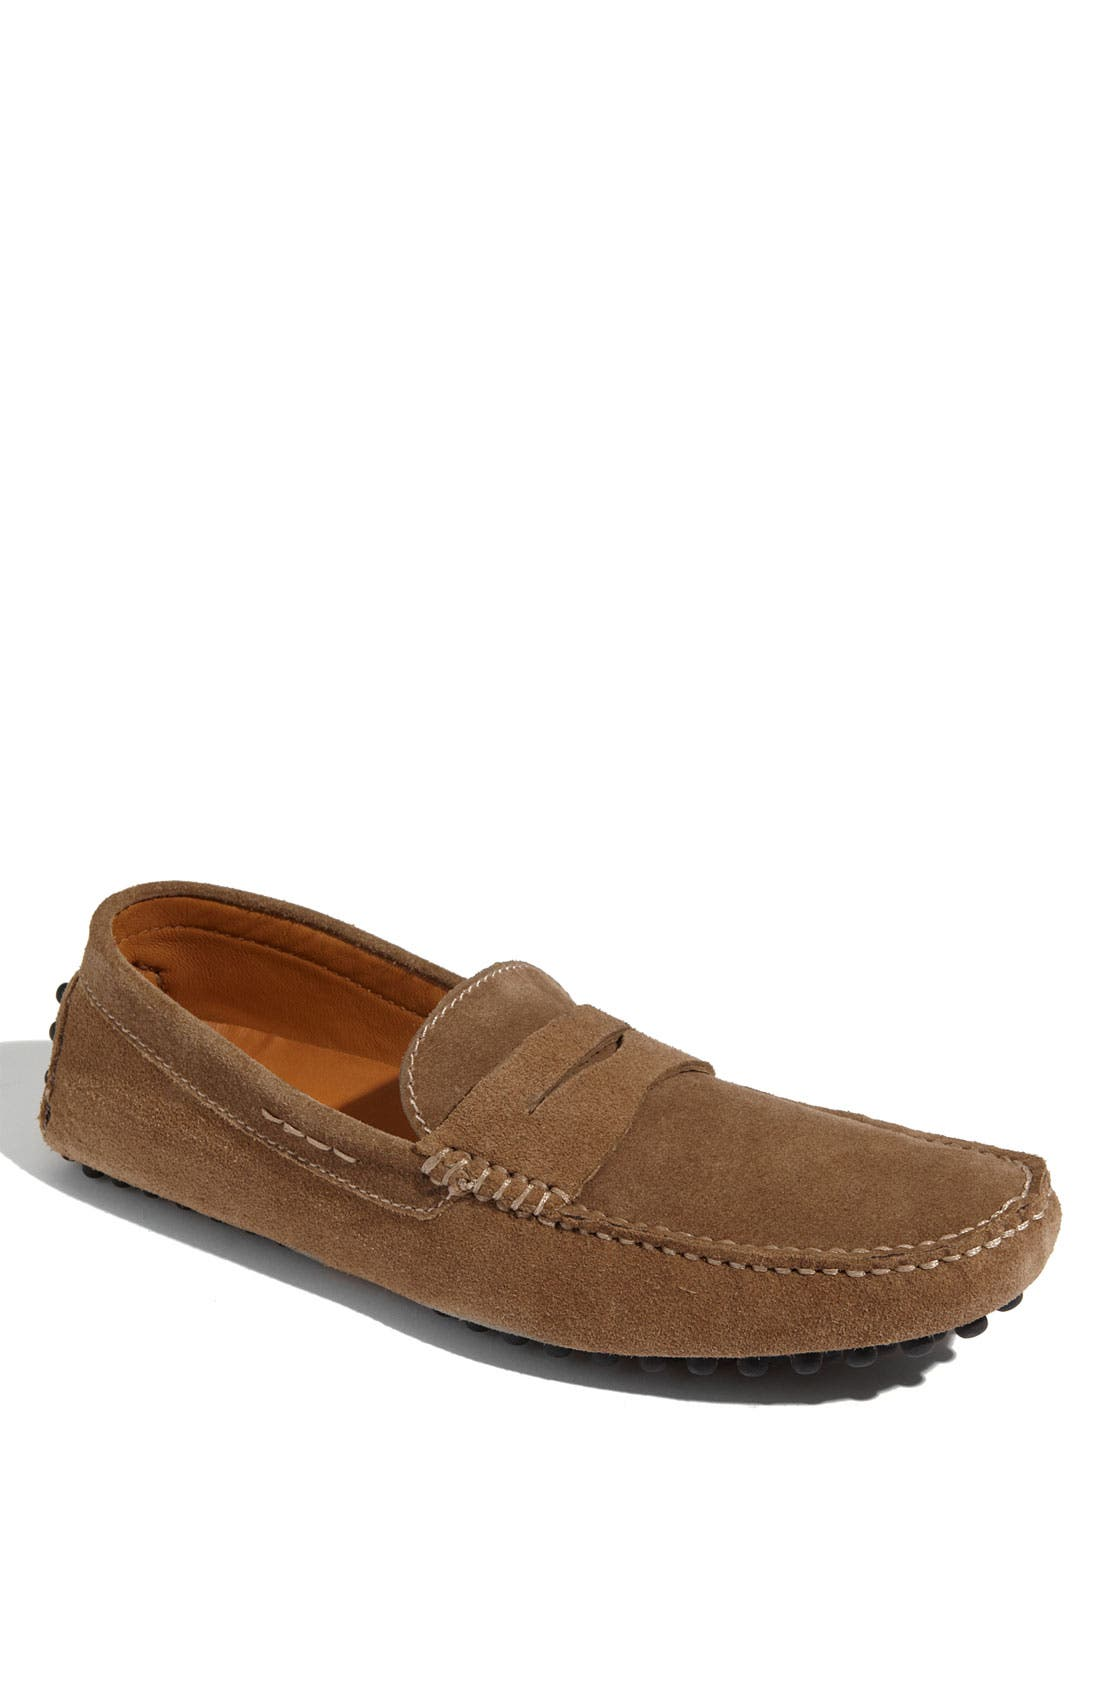 'Tobago' Driving Shoe,                         Main,                         color, Taupe